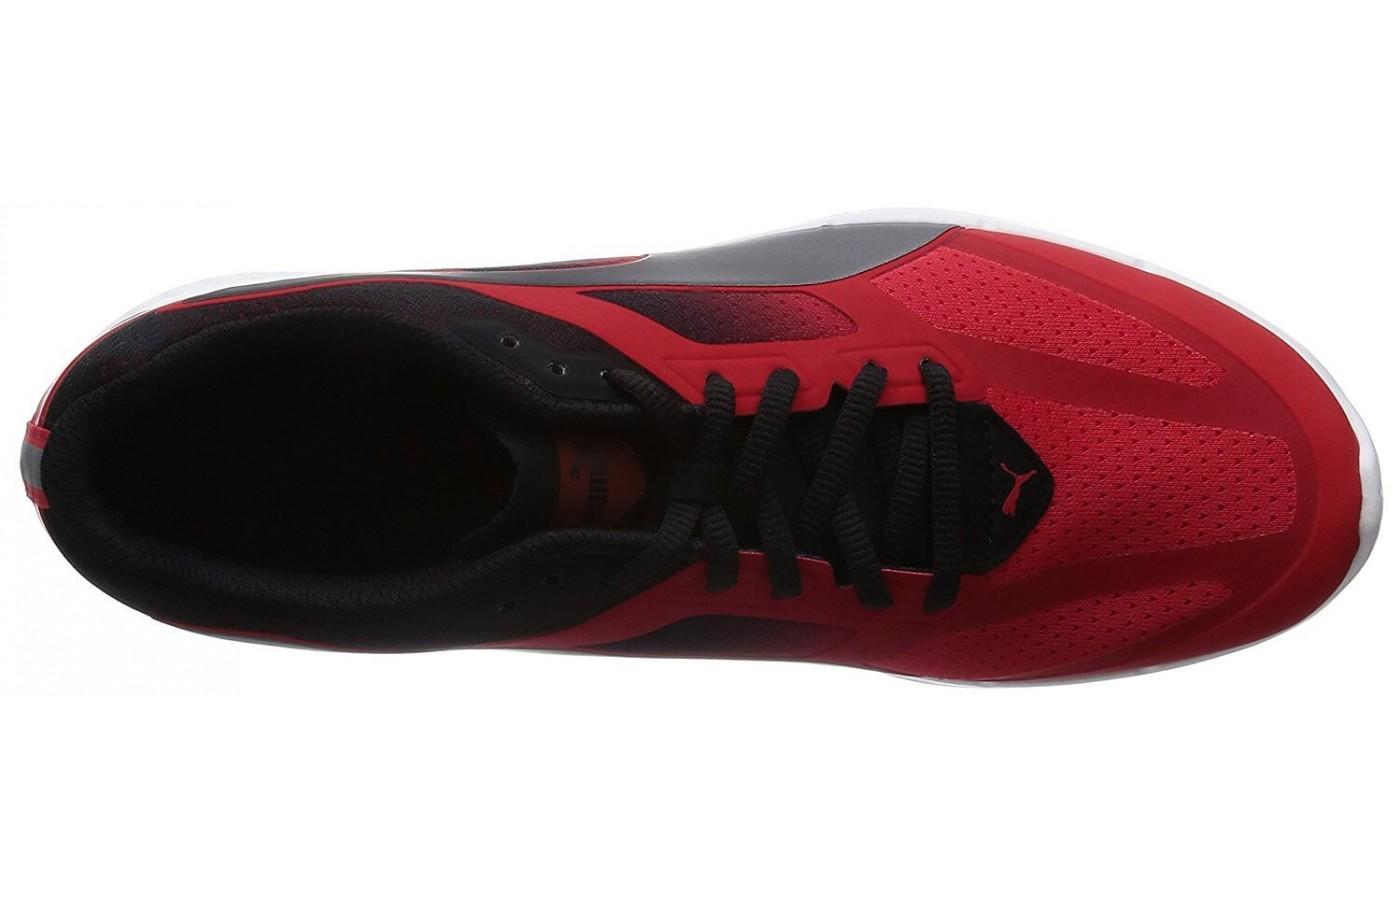 Puma Ignite AirMesh breathable upper